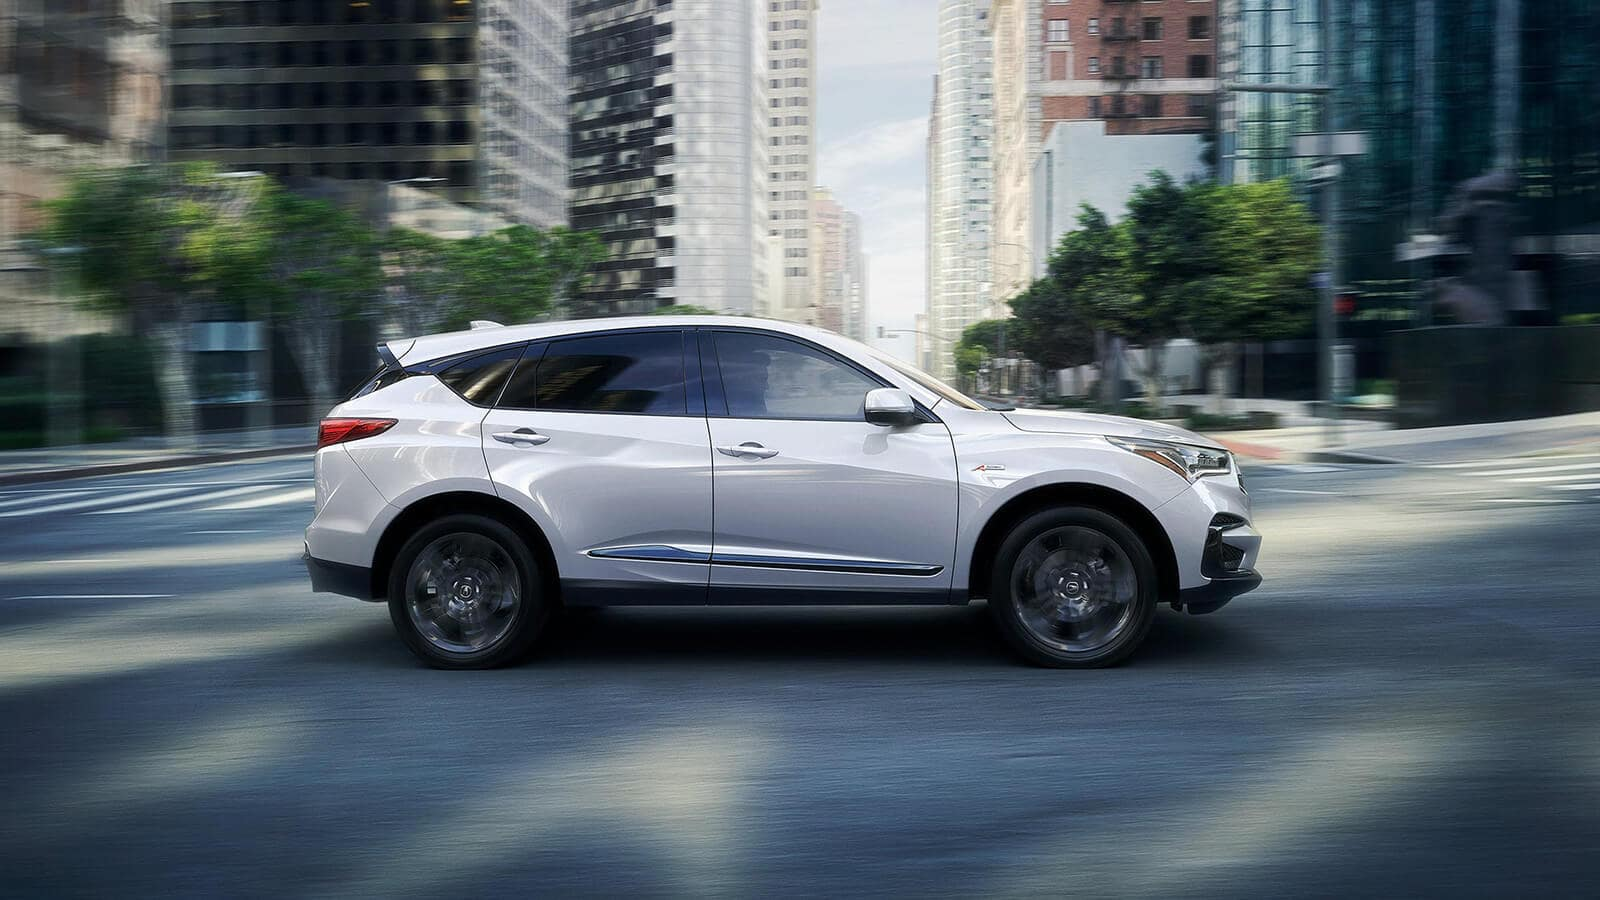 2020 Acura RDX Exterior Side Profile White